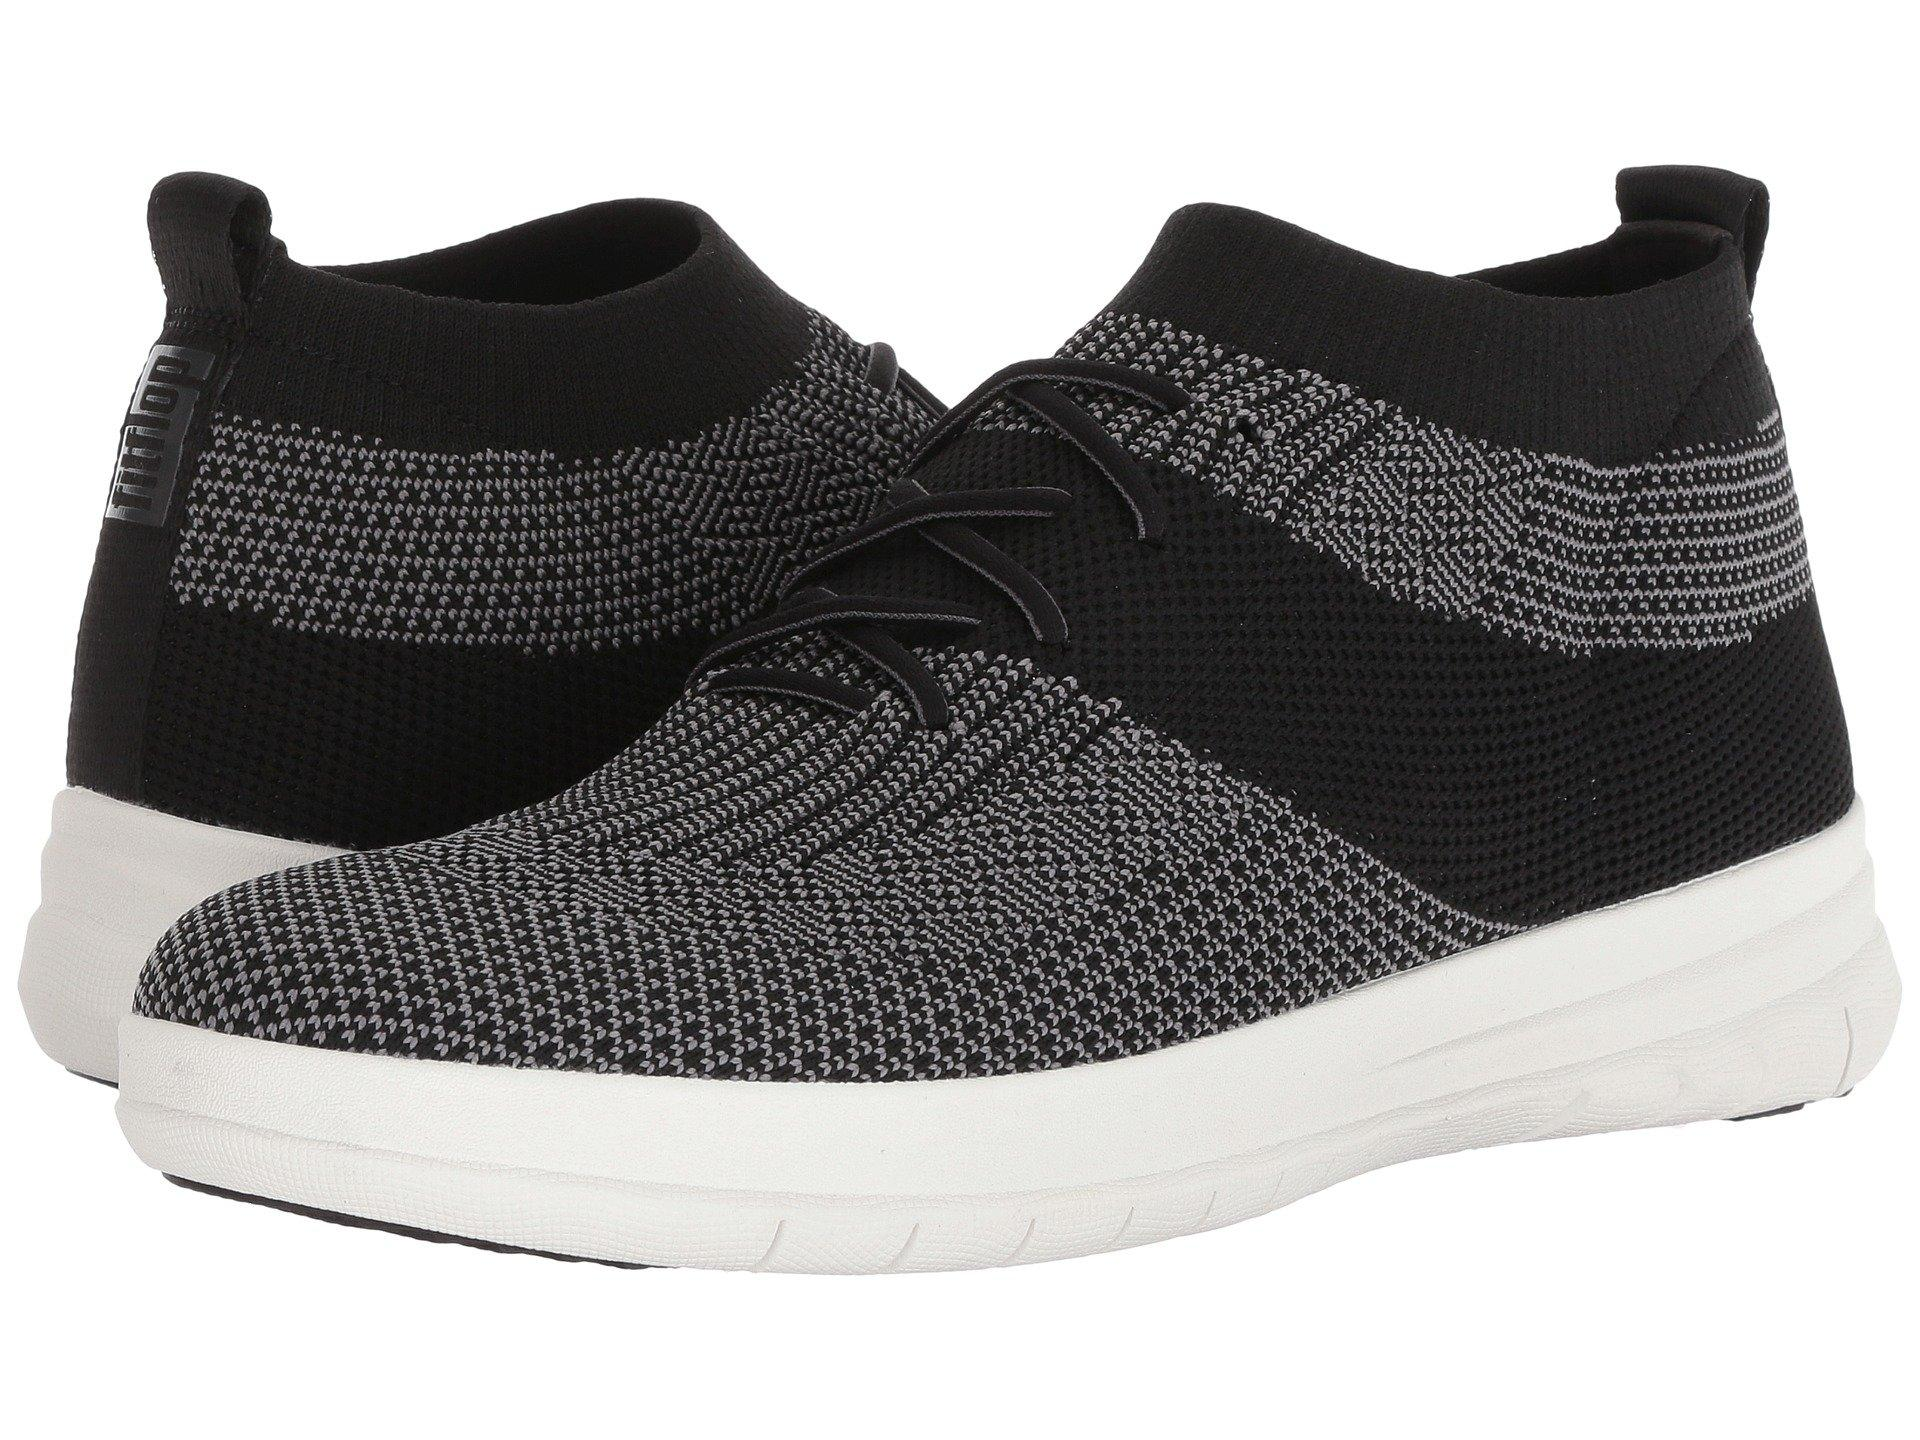 3a1f299bf Lyst - Fitflop Uberknit Slip-on High Top Sneakers in Black for Men ...